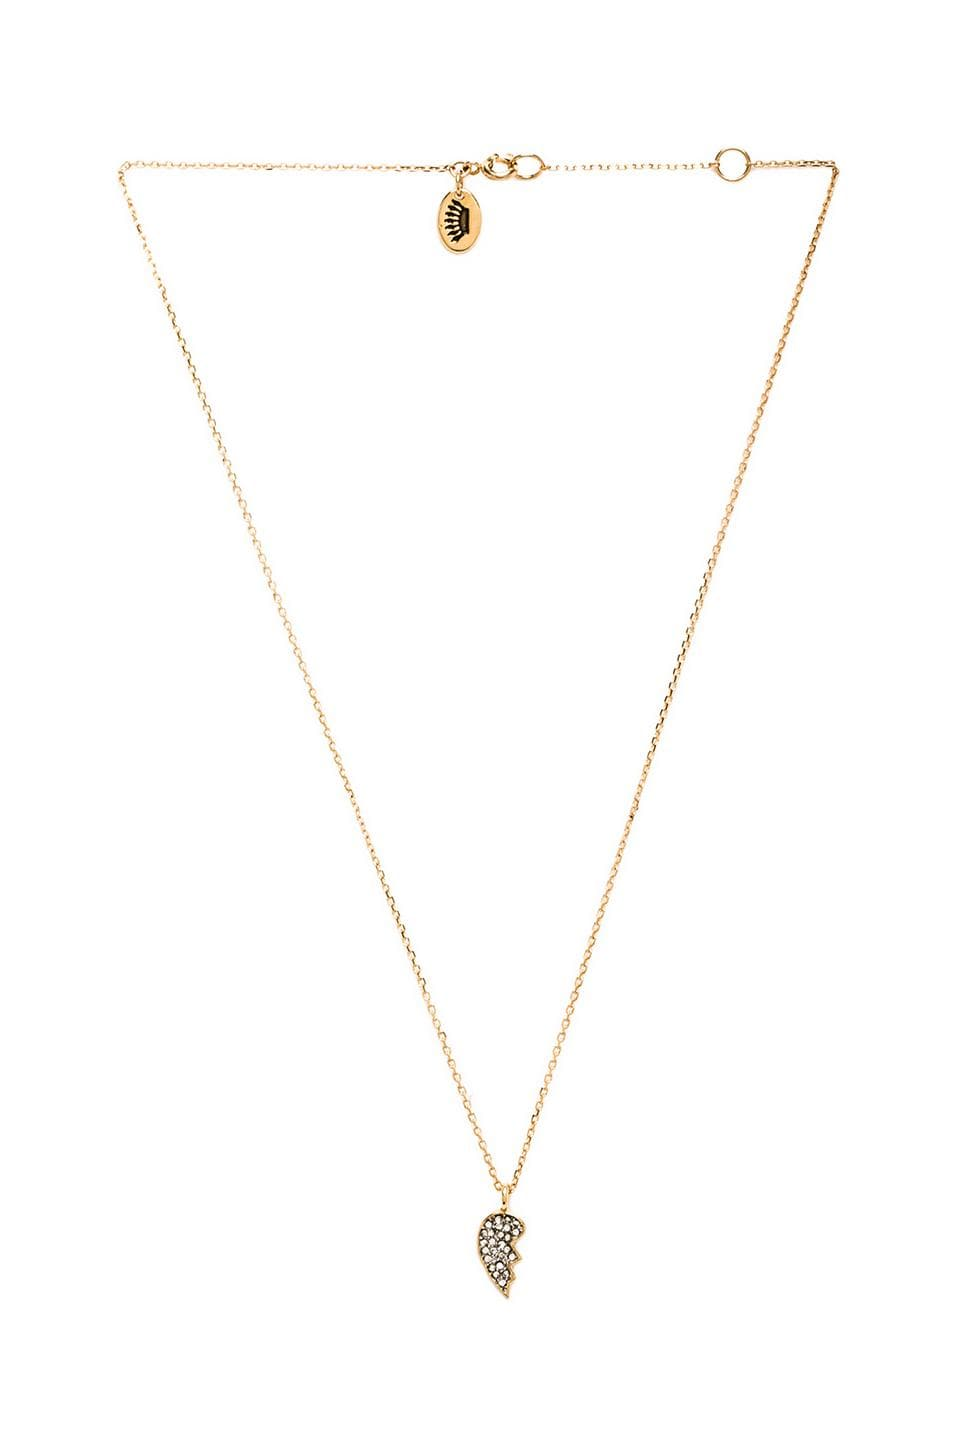 Juicy Couture Best Friend Wish Necklaces